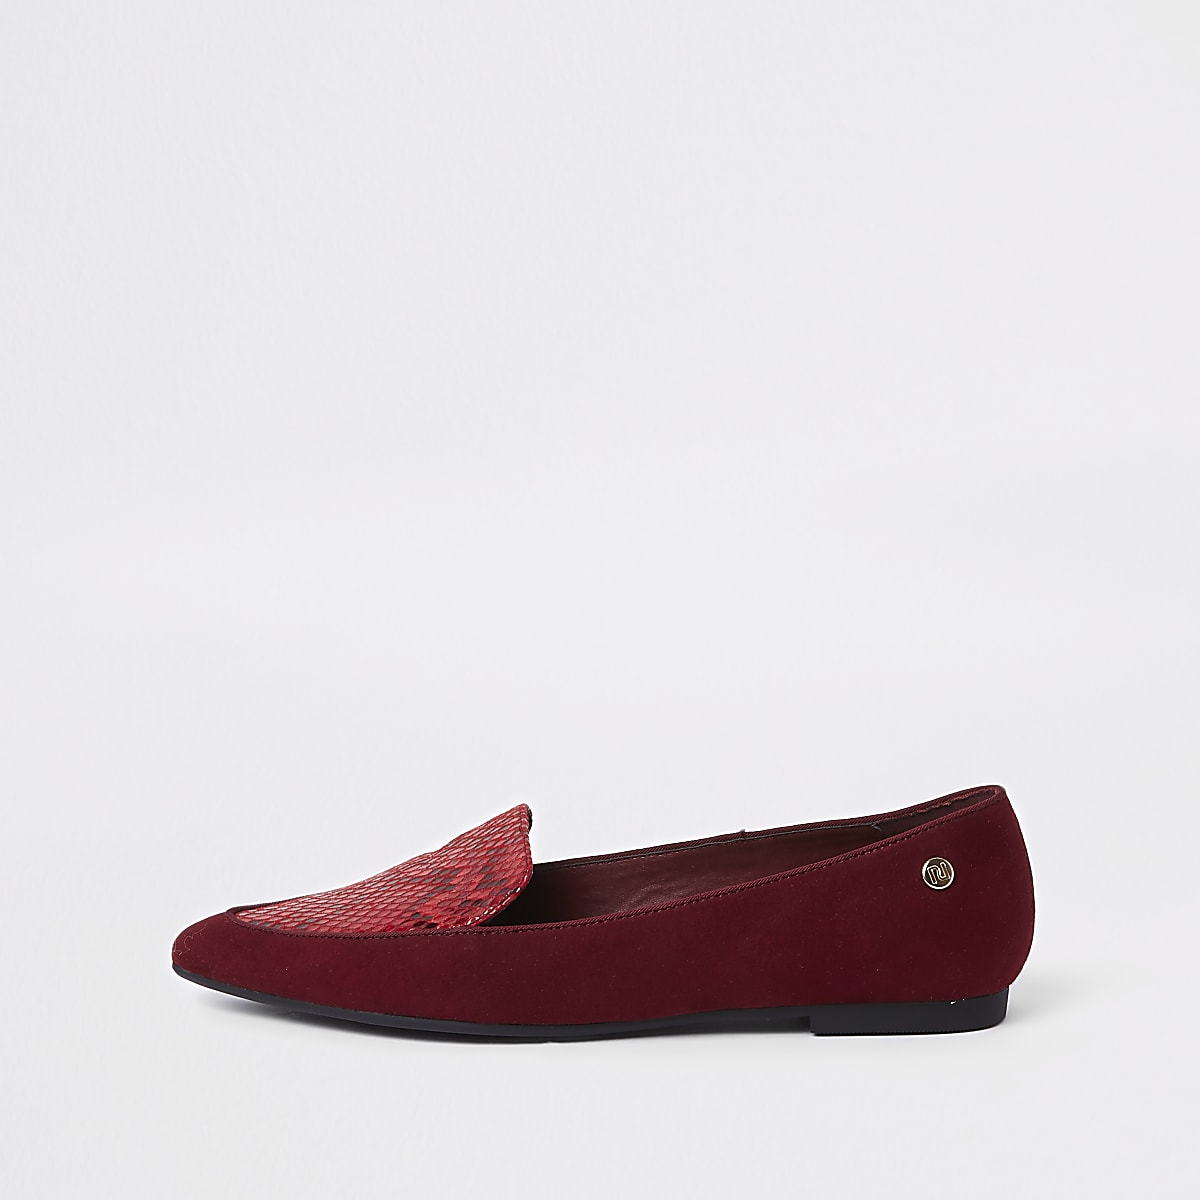 Red Shoes Toe Pointed Croc Flat 7Yybvf6Ig